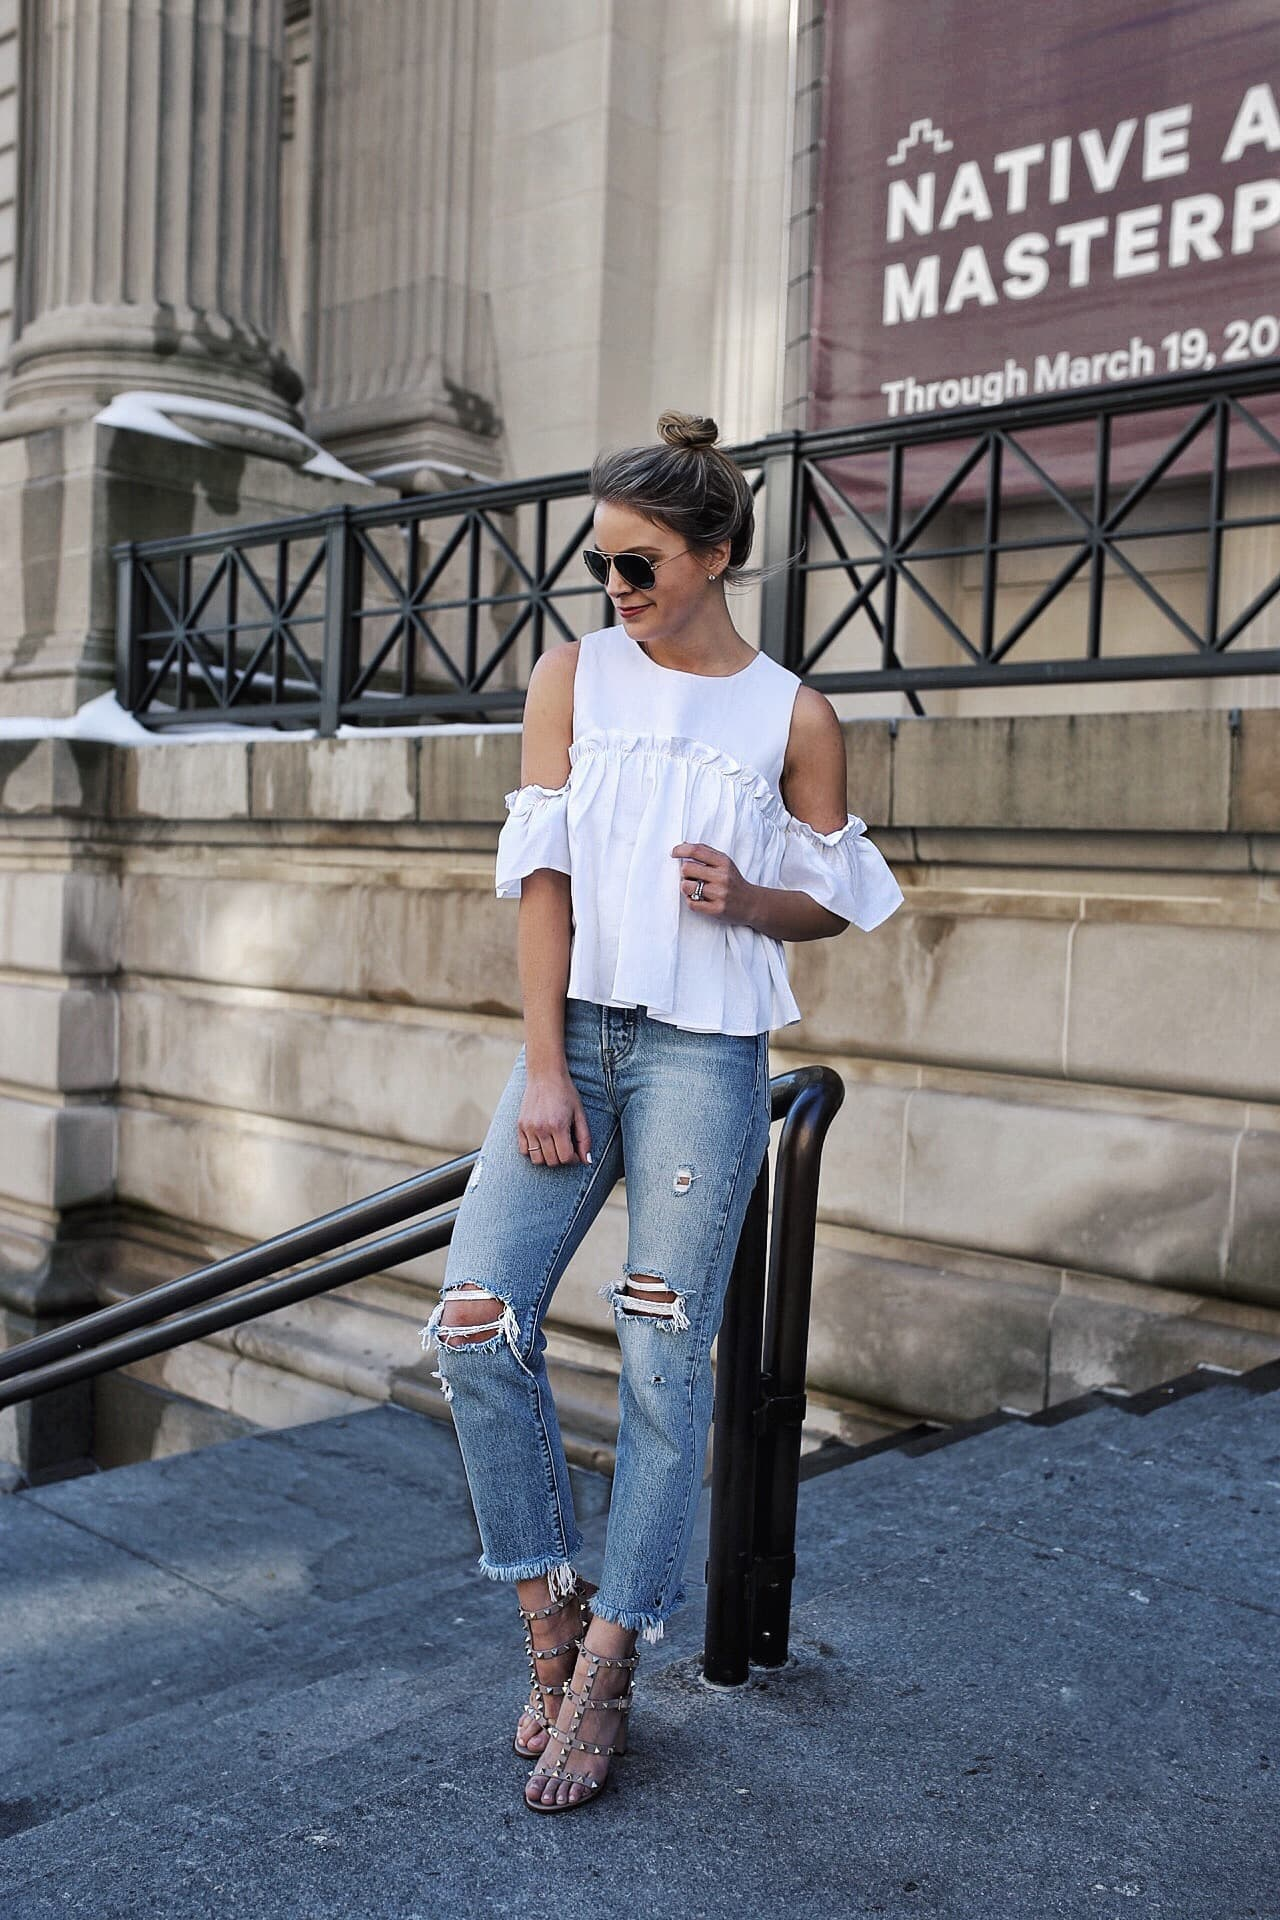 da709763827d87 TOP 10 SPRING OUTFITS - Styled Snapshots